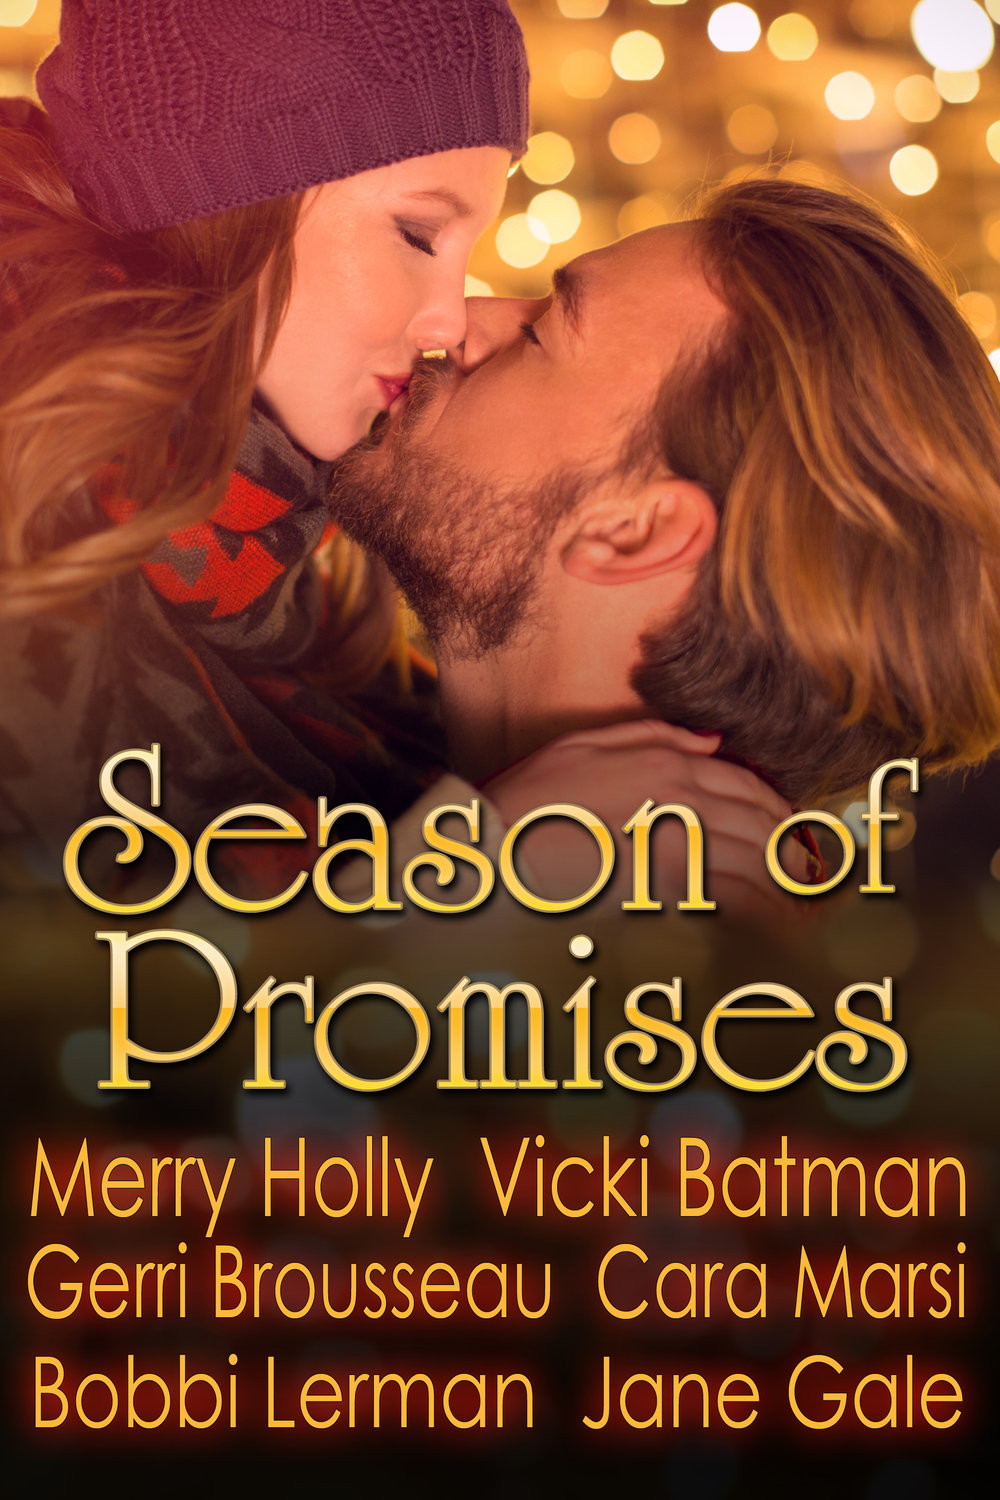 Season of Promises Anthology